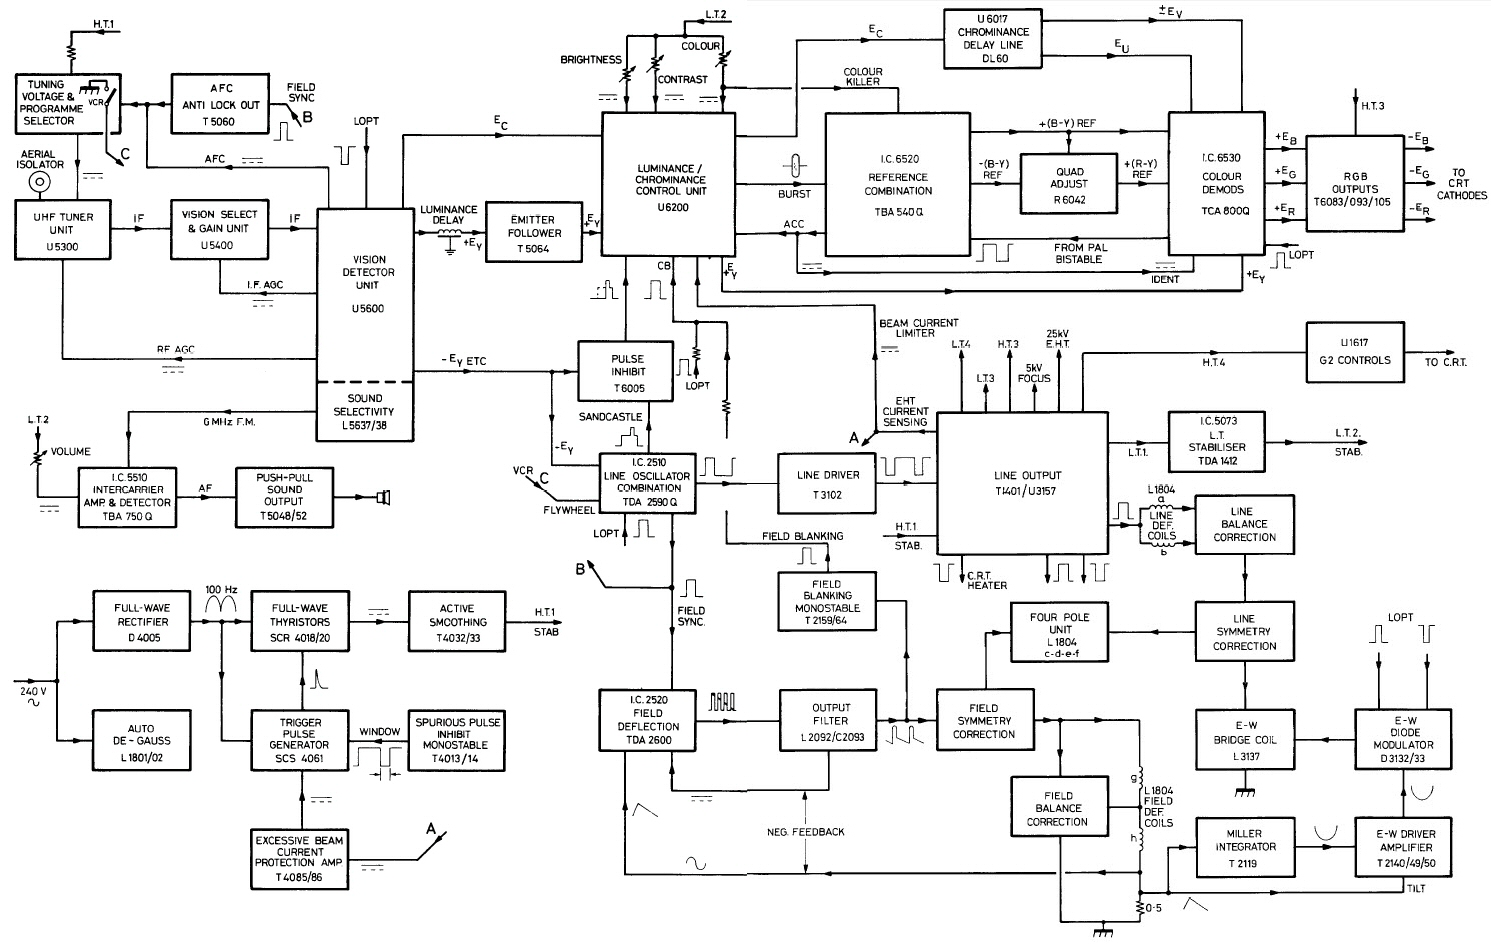 block flow diagram word